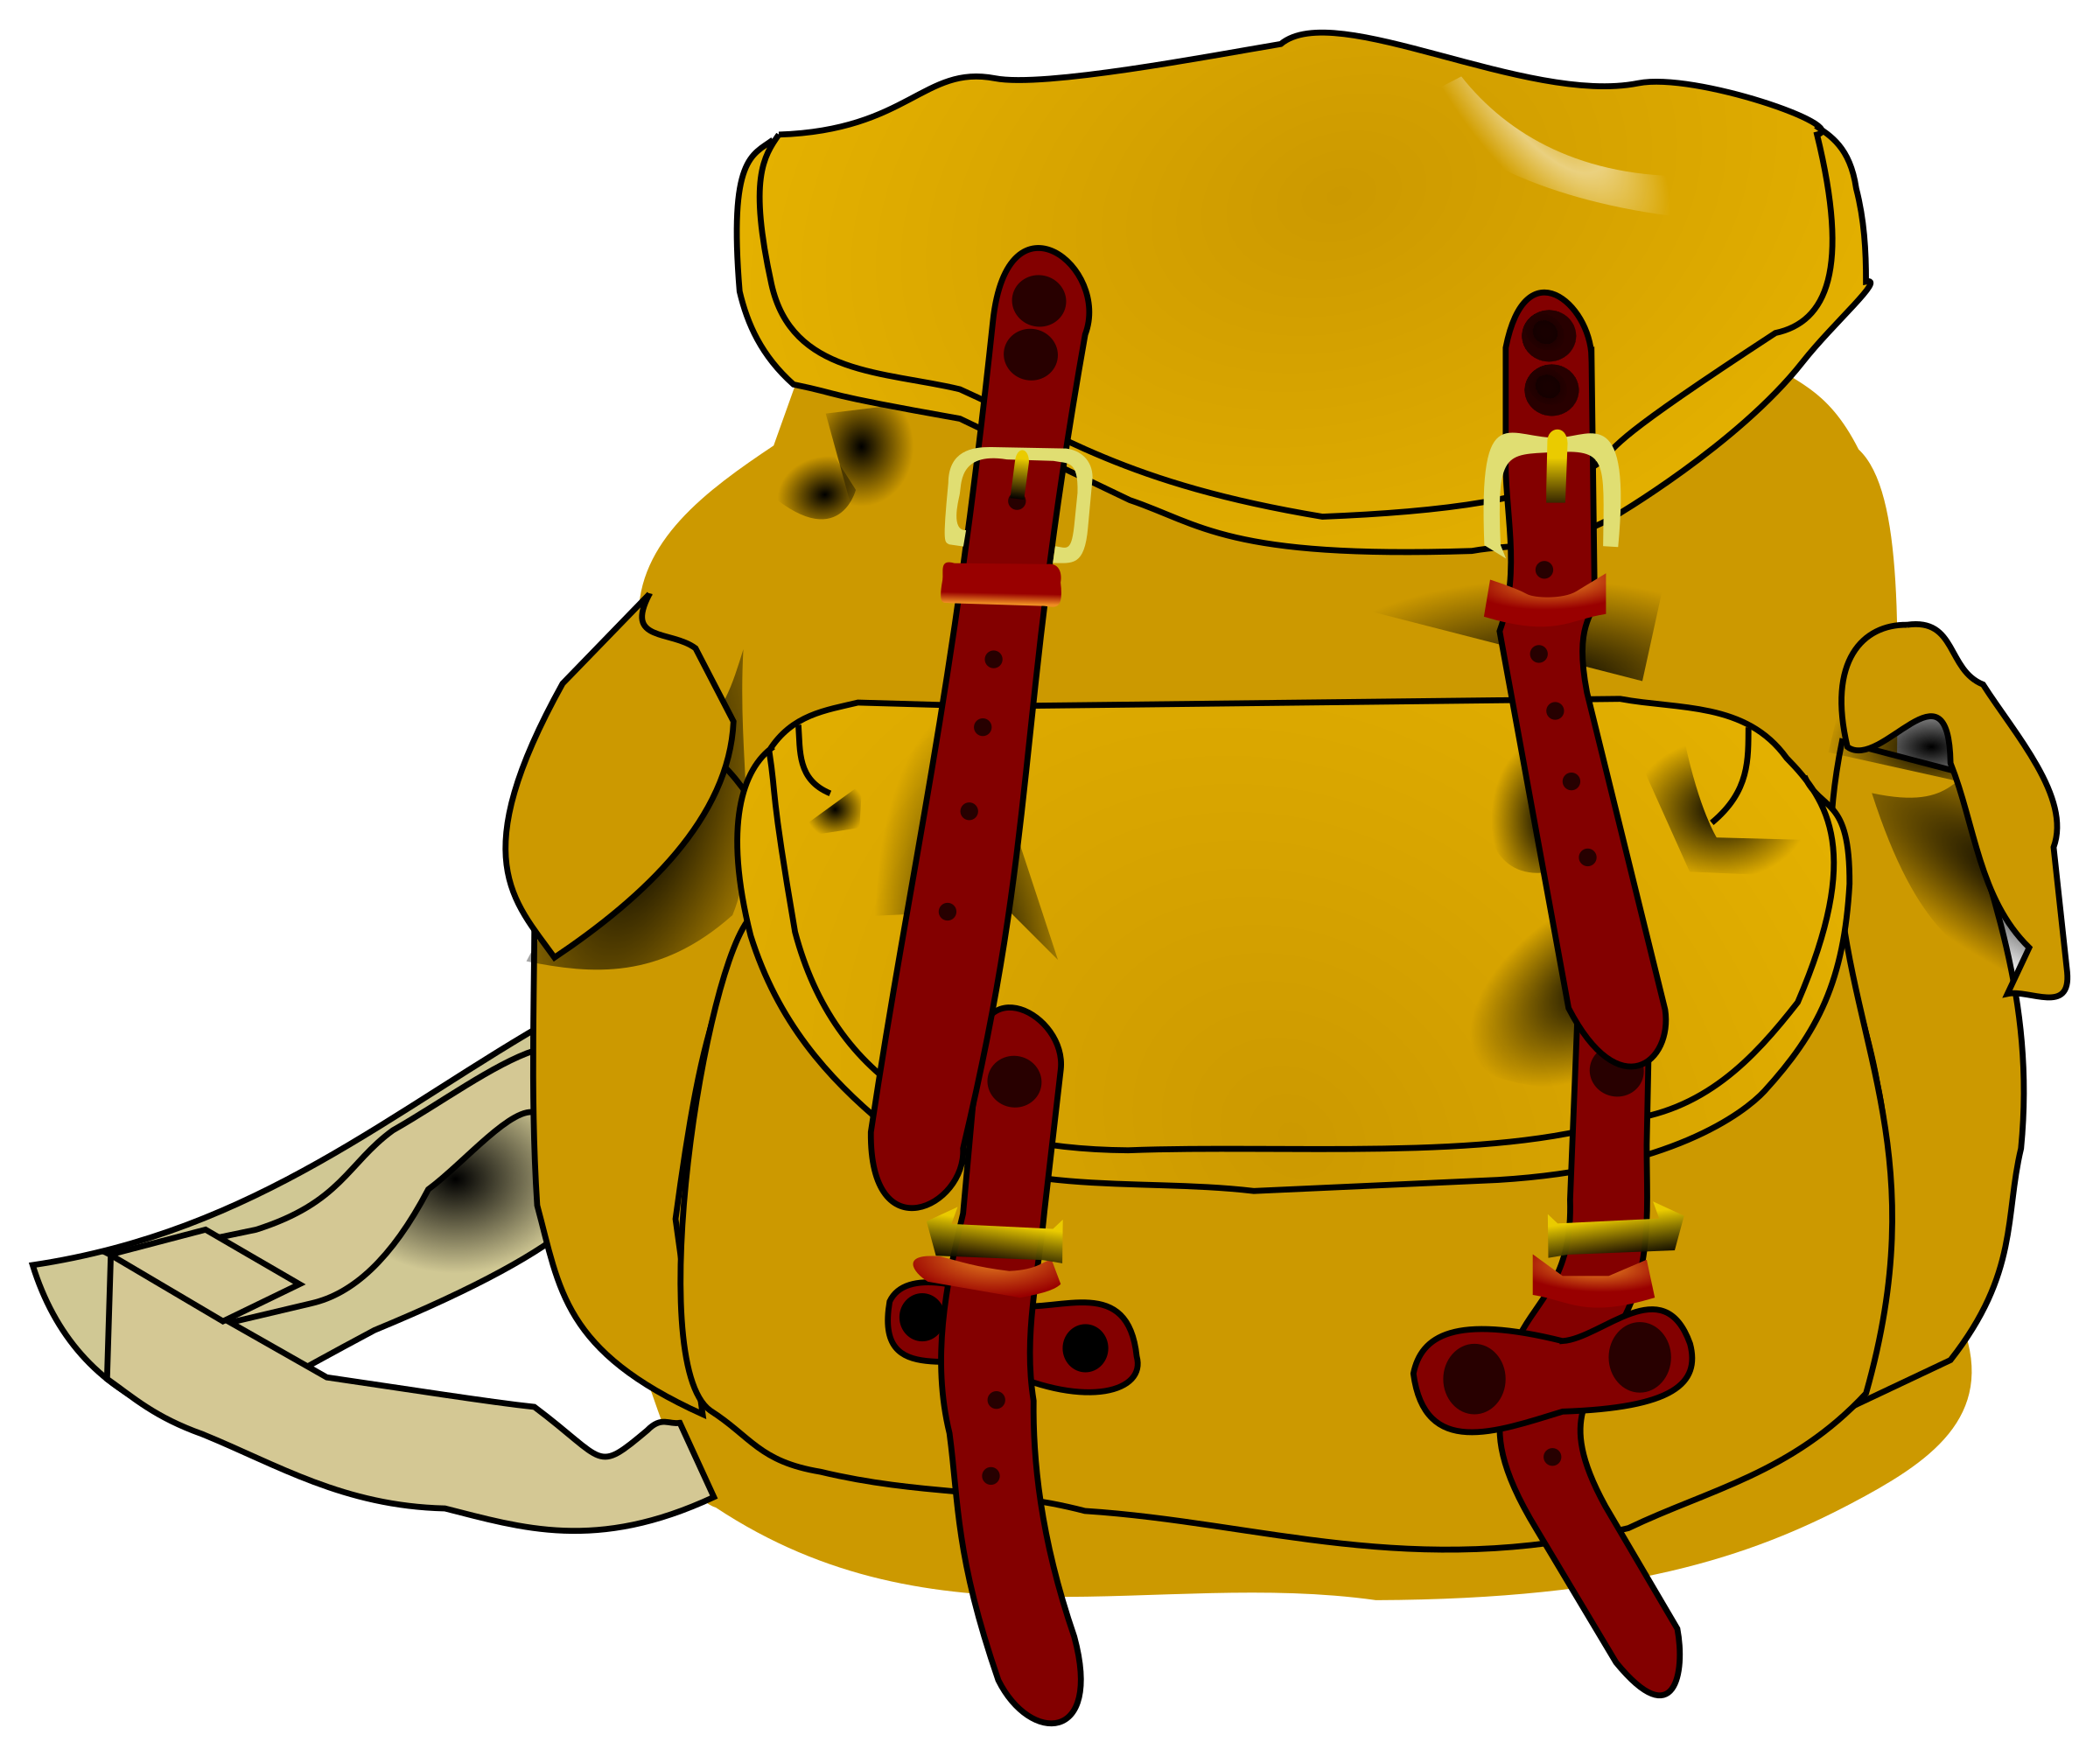 Lunch clipart backpack, Lunch backpack Transparent FREE for.